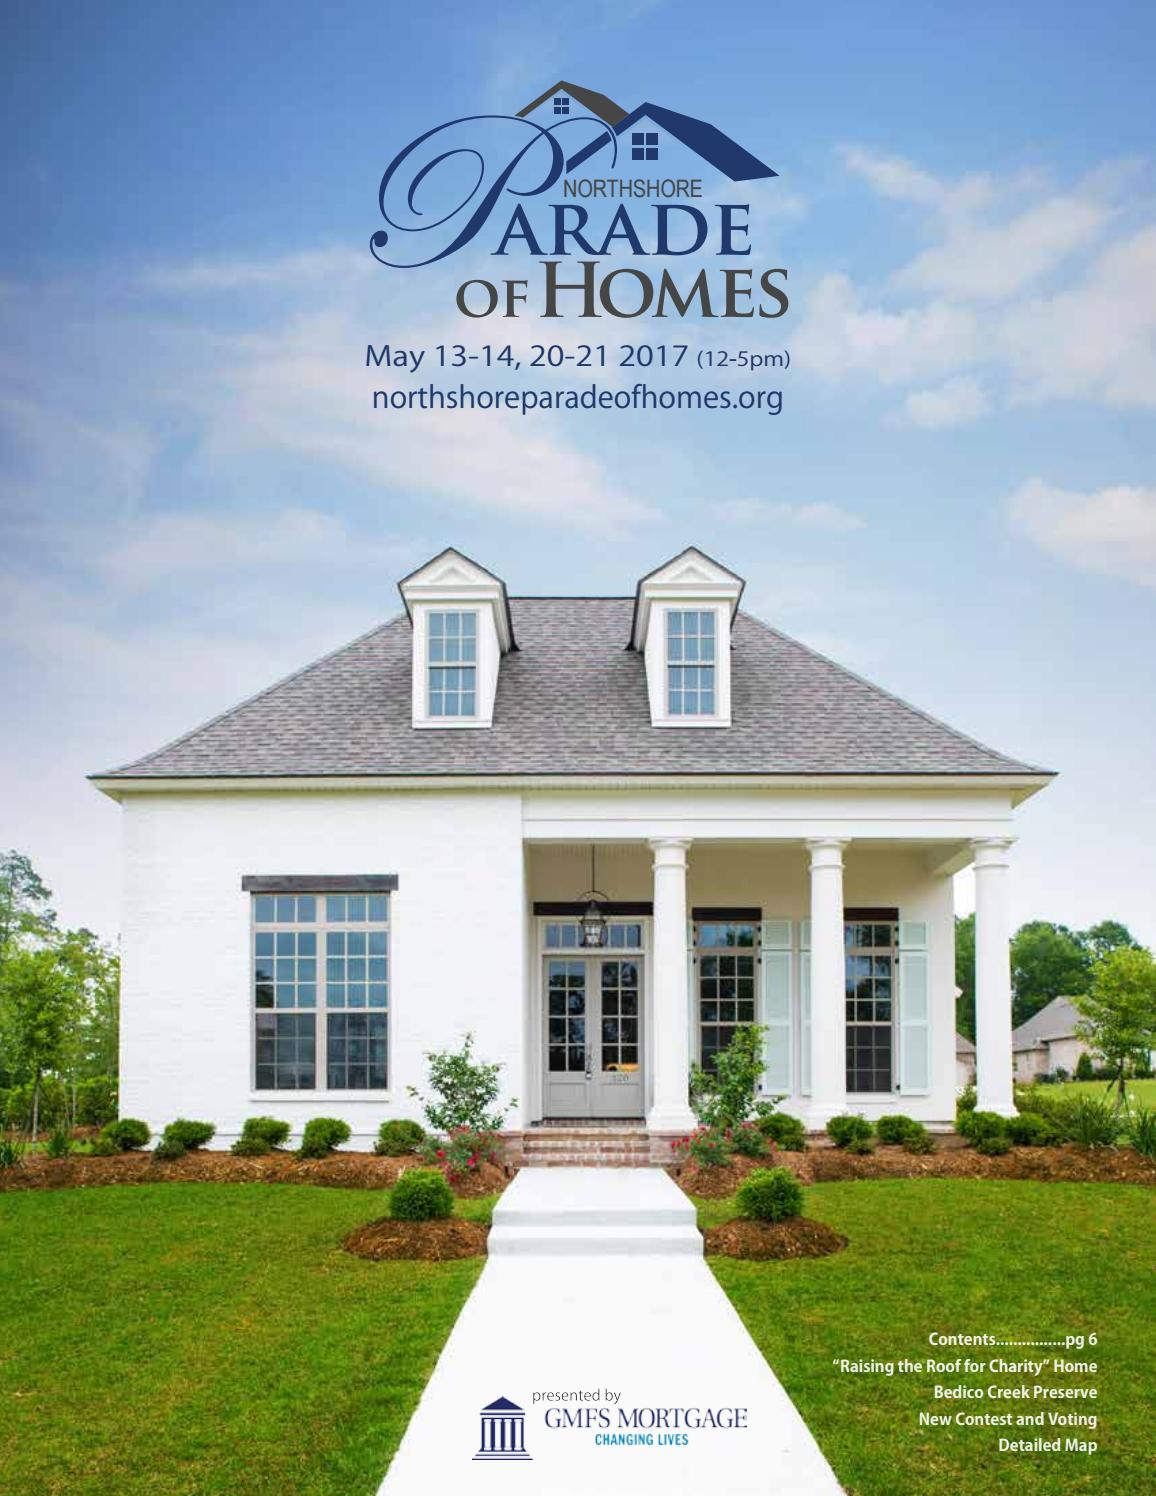 Northshore Parade of Homes 2017 by